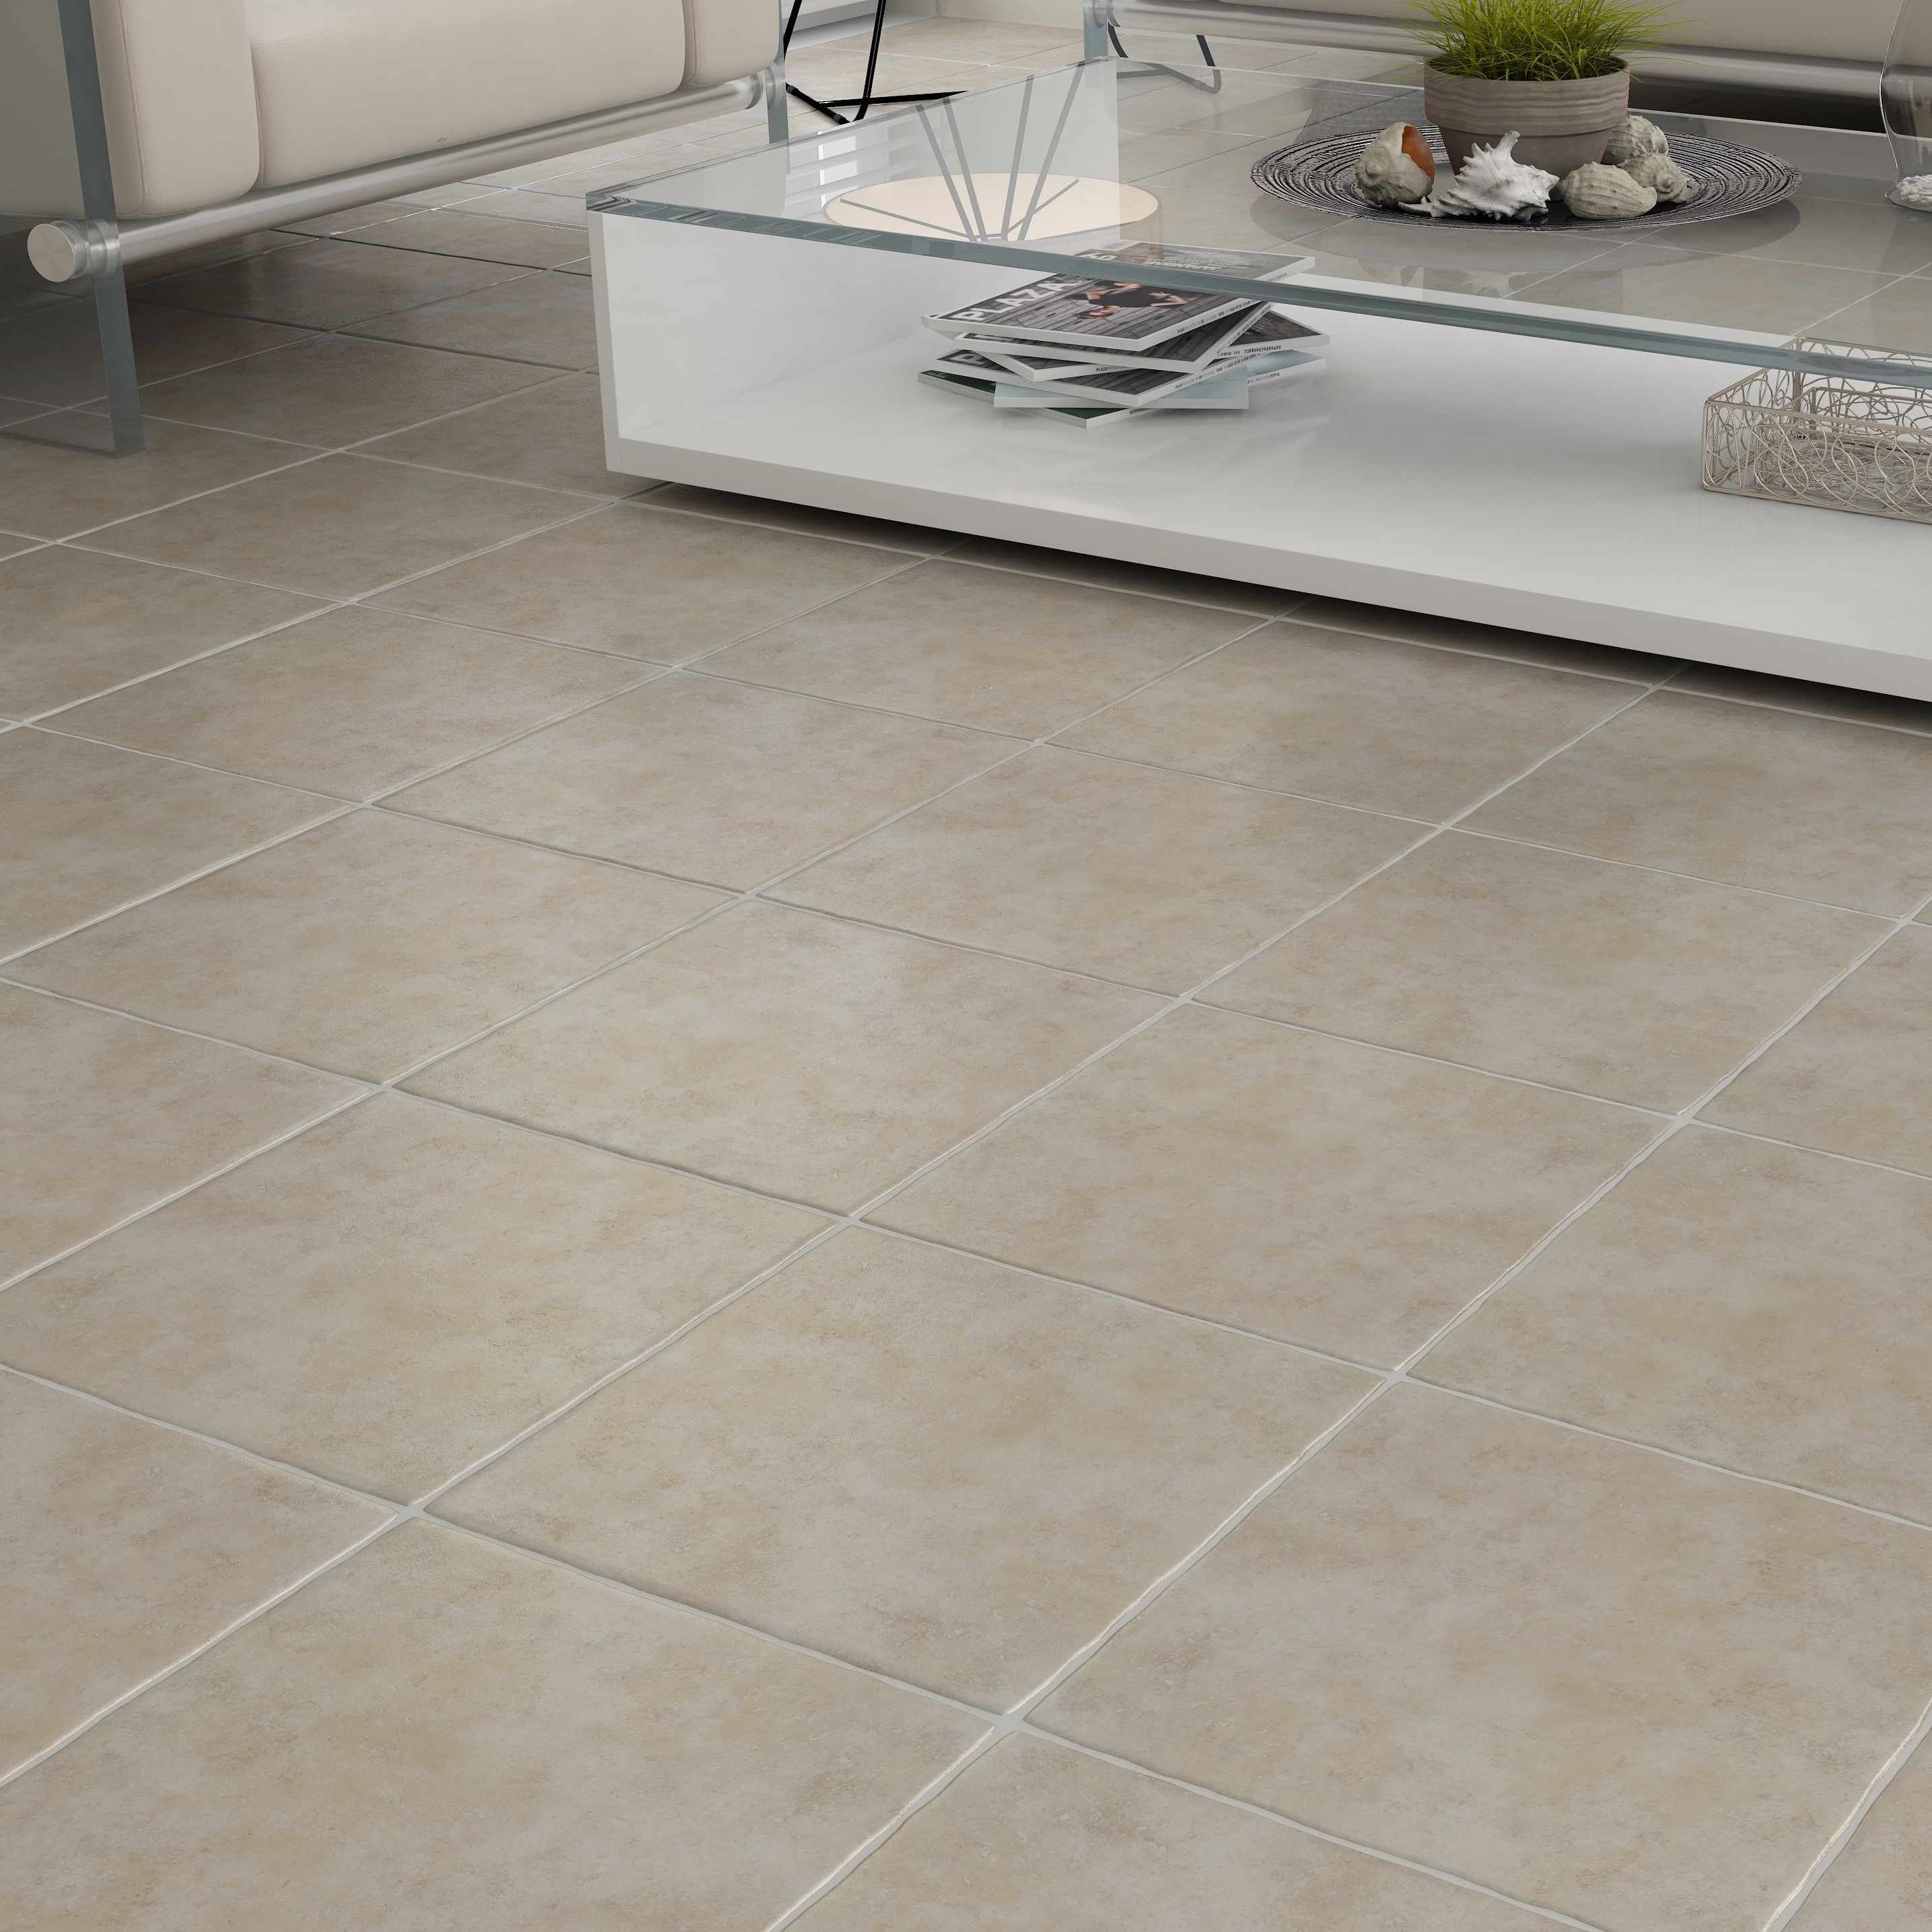 Porcelain Floor Tiles Calcuta Natural Stone Effect Ceramic Floor Tile Pack Of 9